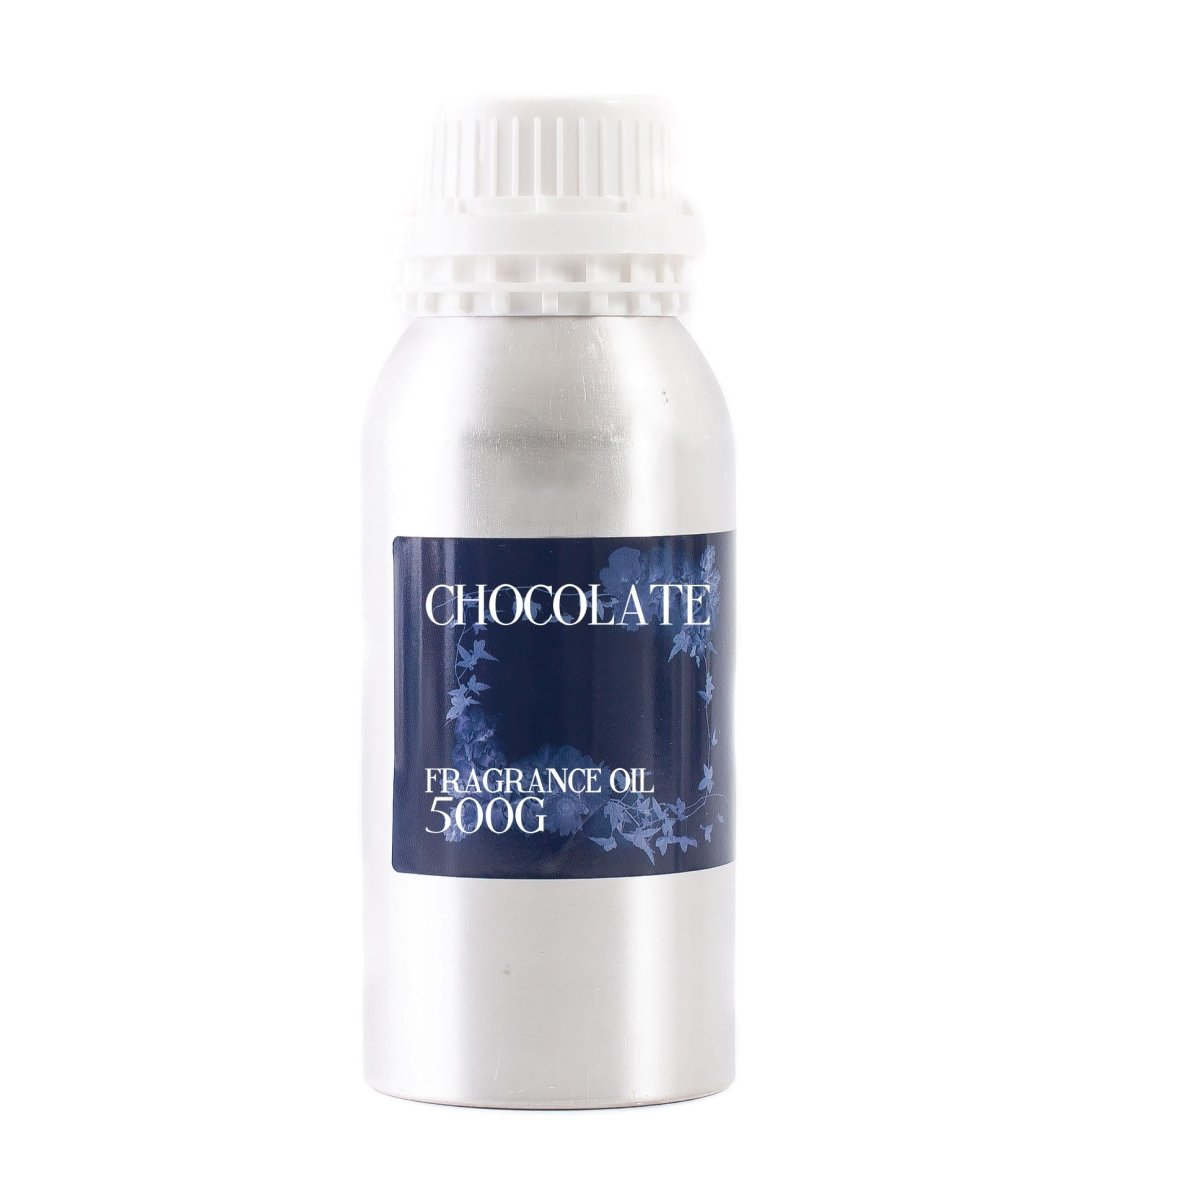 Chocolate Fragrance Oil - Mystic Moments UK